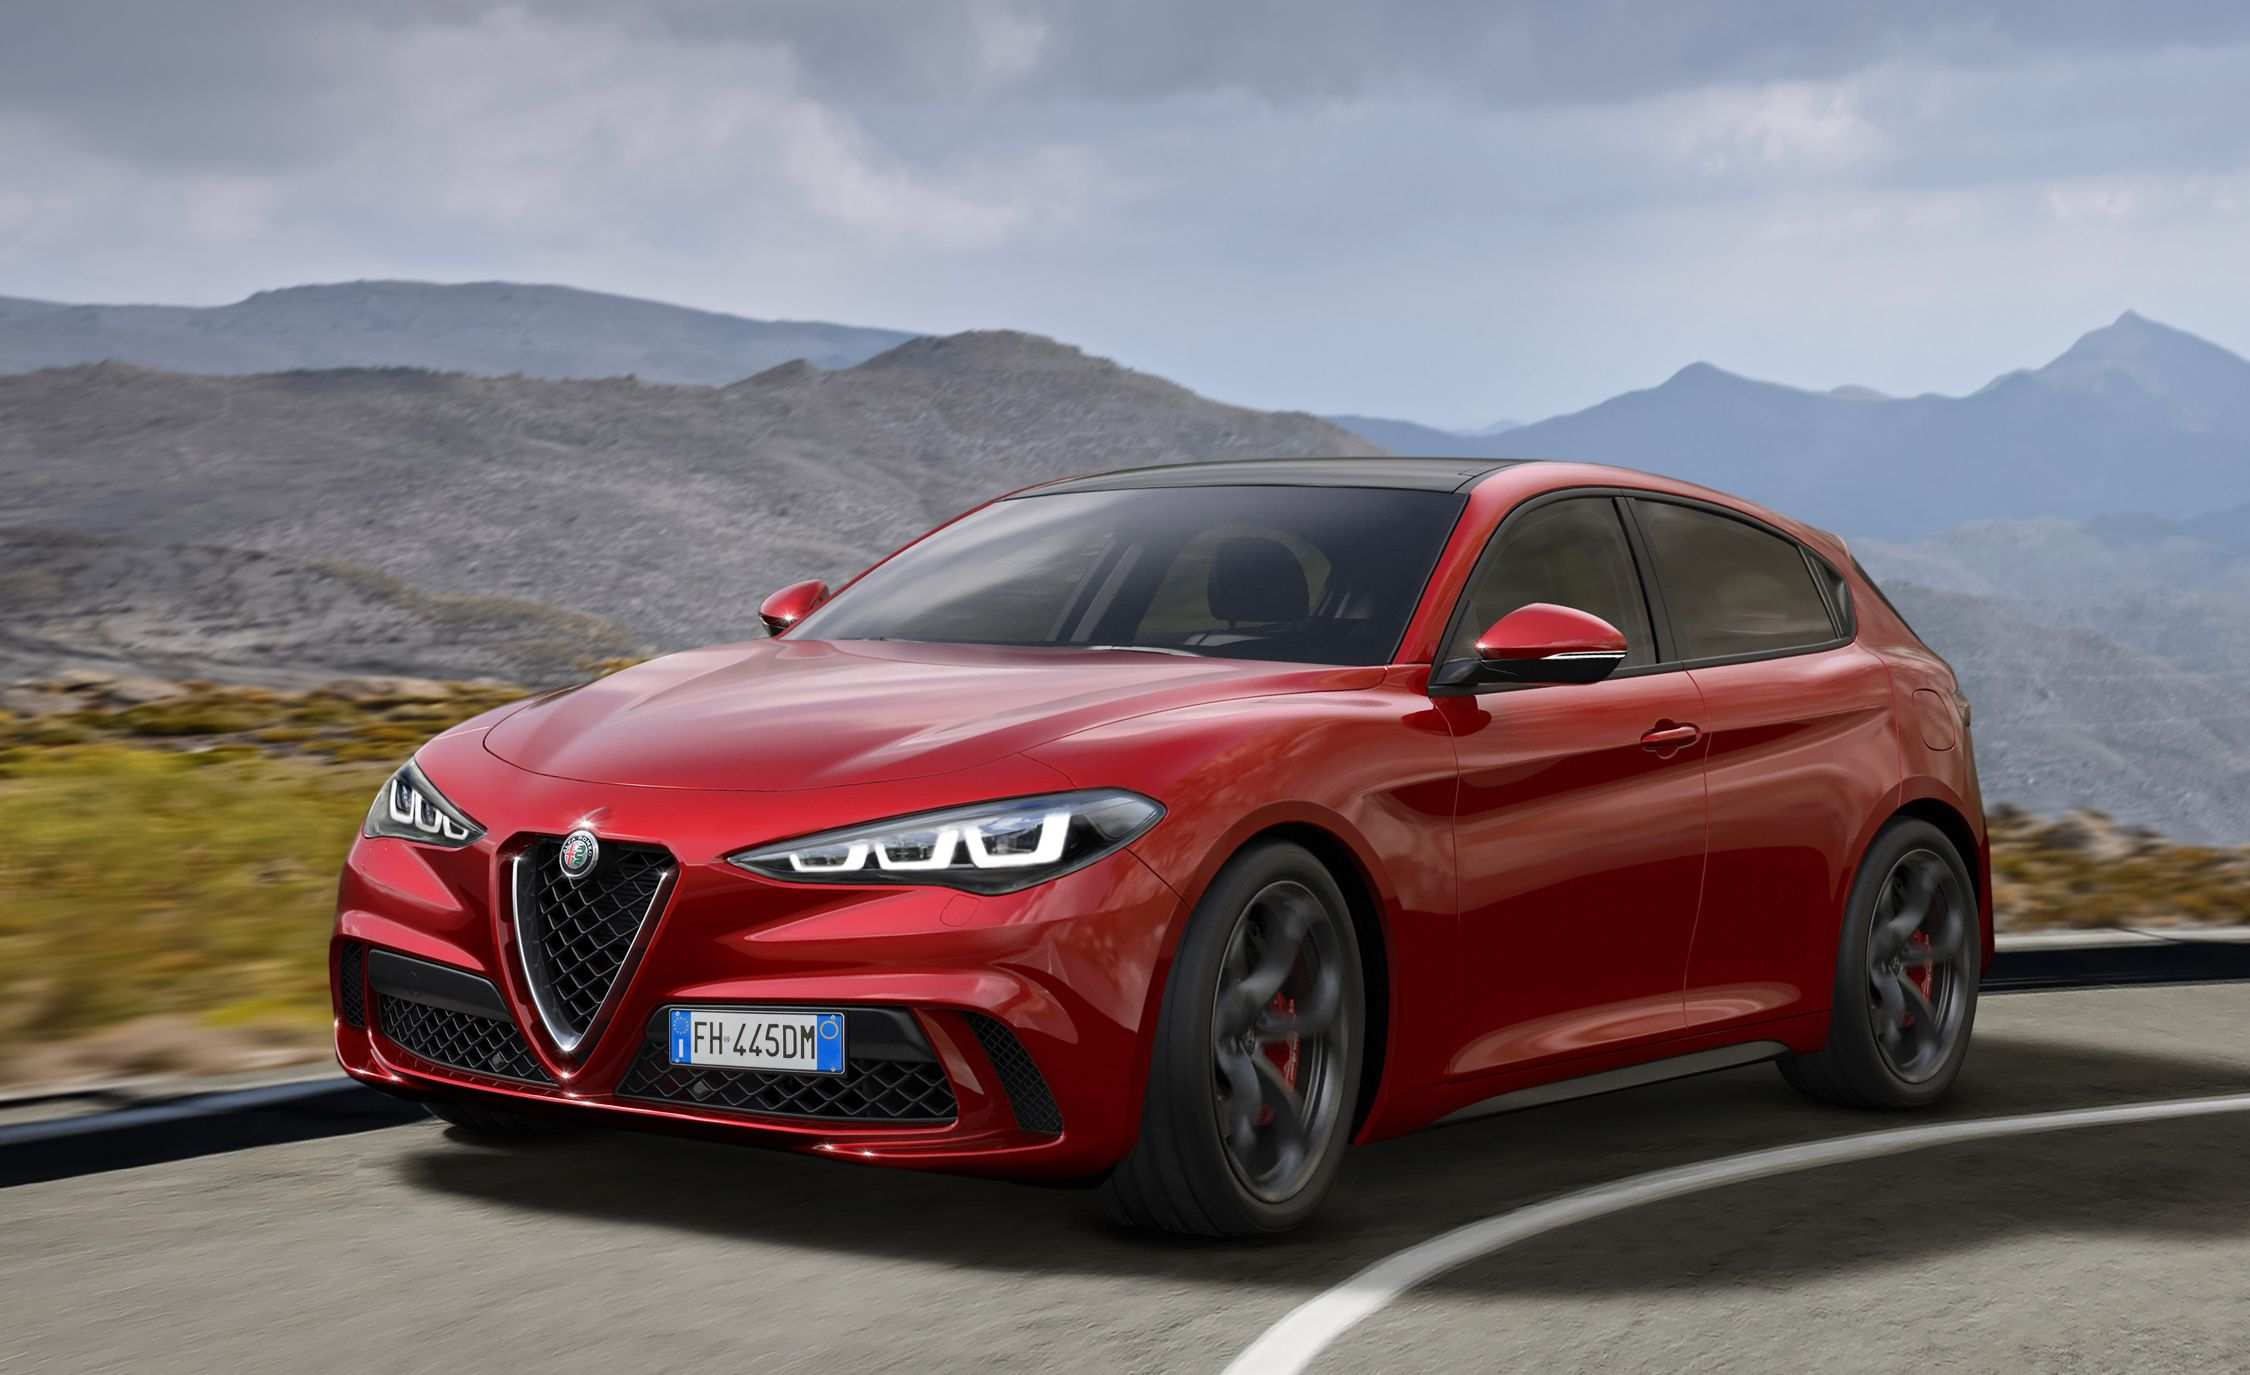 88 Concept of 2020 Alfa Romeo Models Configurations by 2020 Alfa Romeo Models